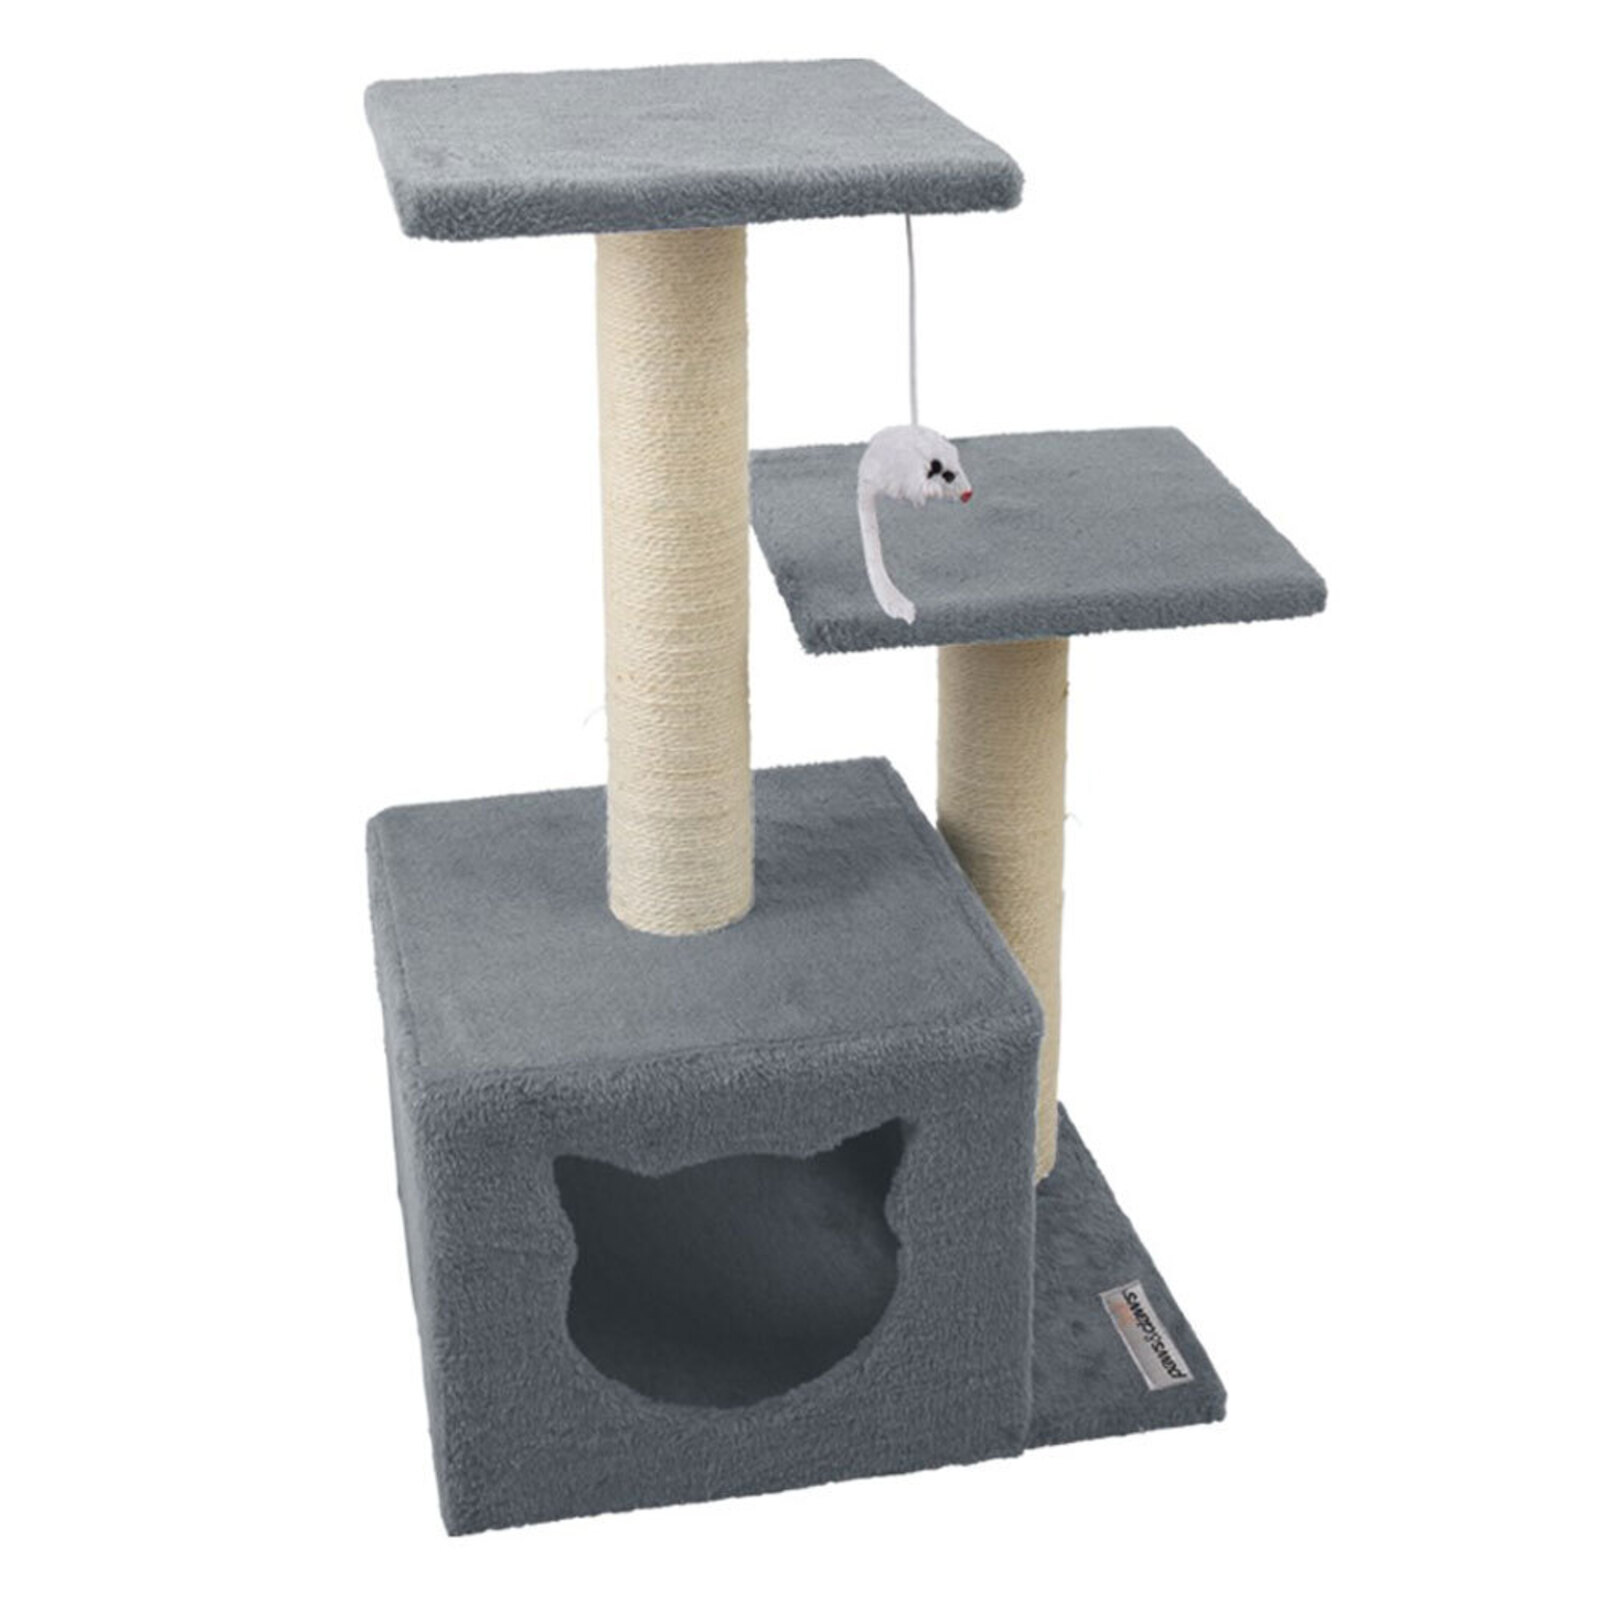 Paws & Claws 63cm Catsby Cats Sisal Scratching Double Platform Hideaway Tower - Assorted Colour